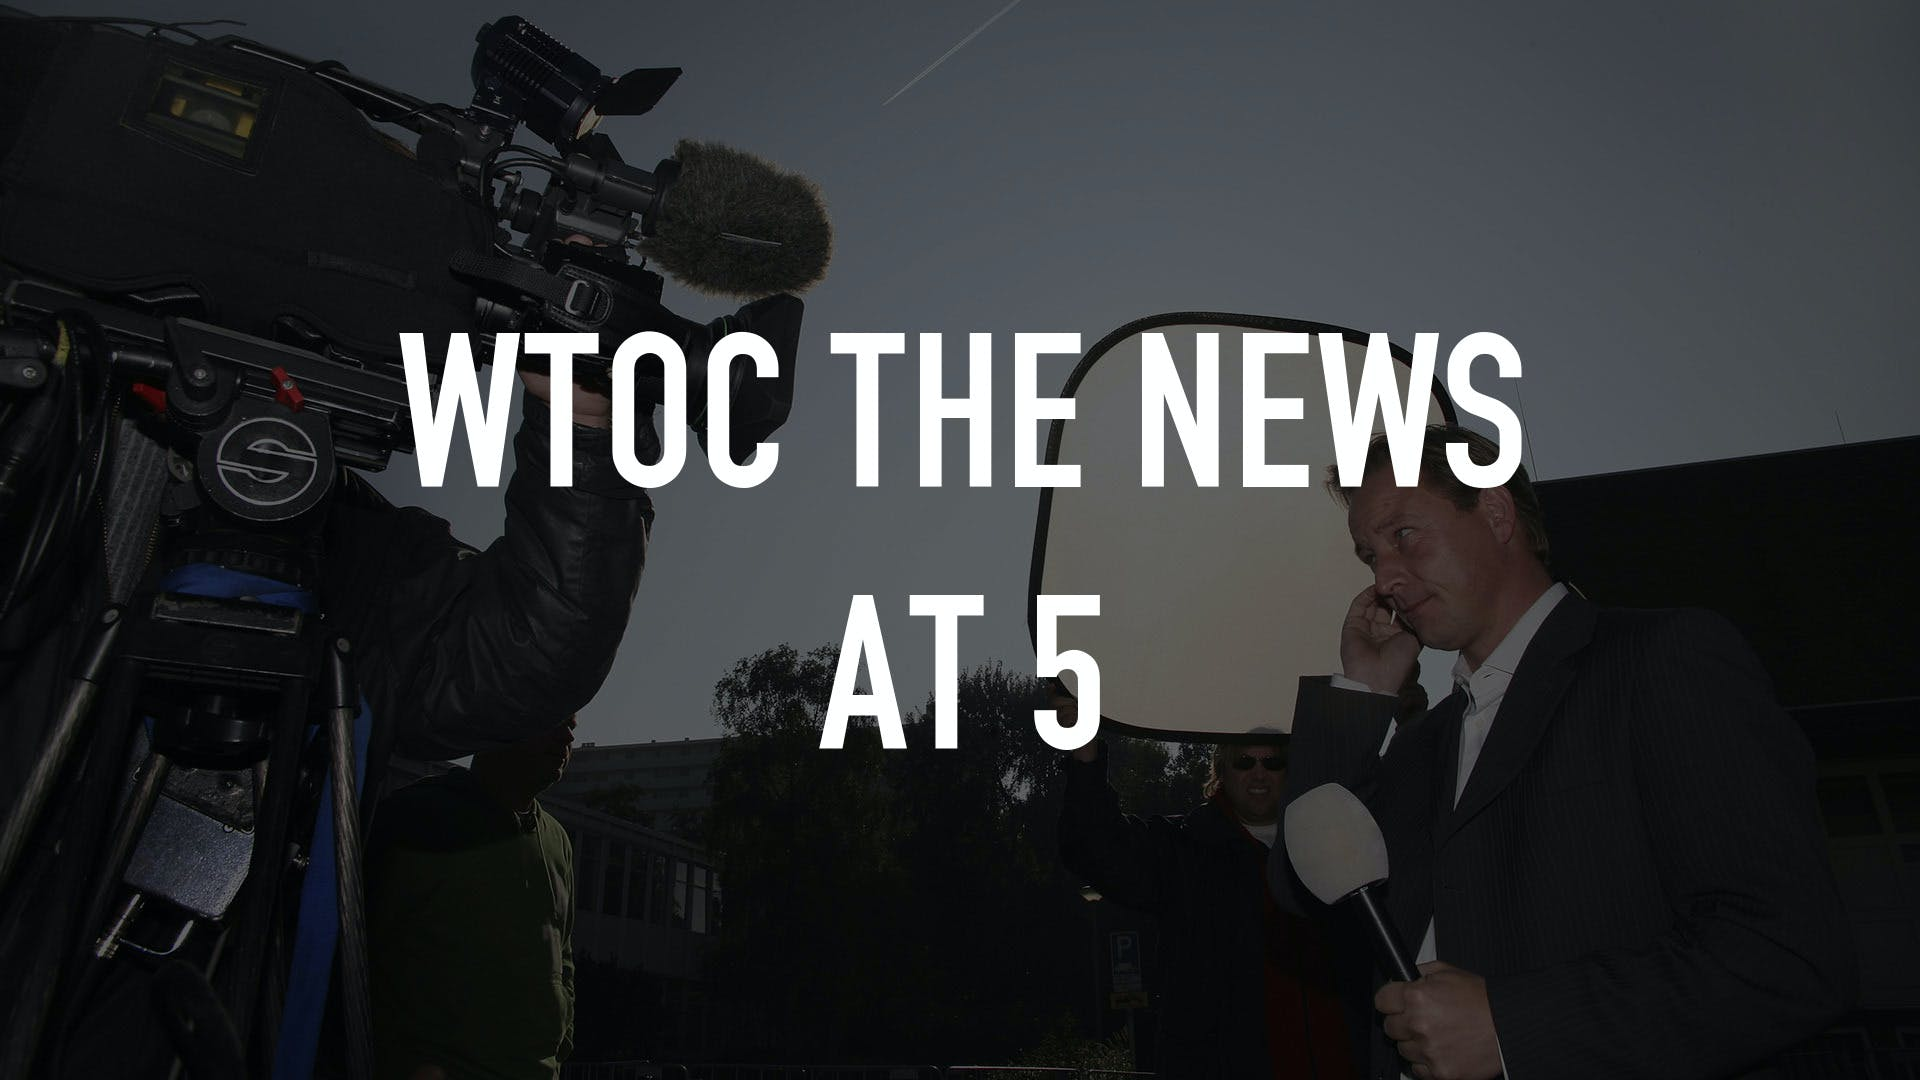 Watch WTOC THE News at 5 | Stream on fuboTV (Free Trial)